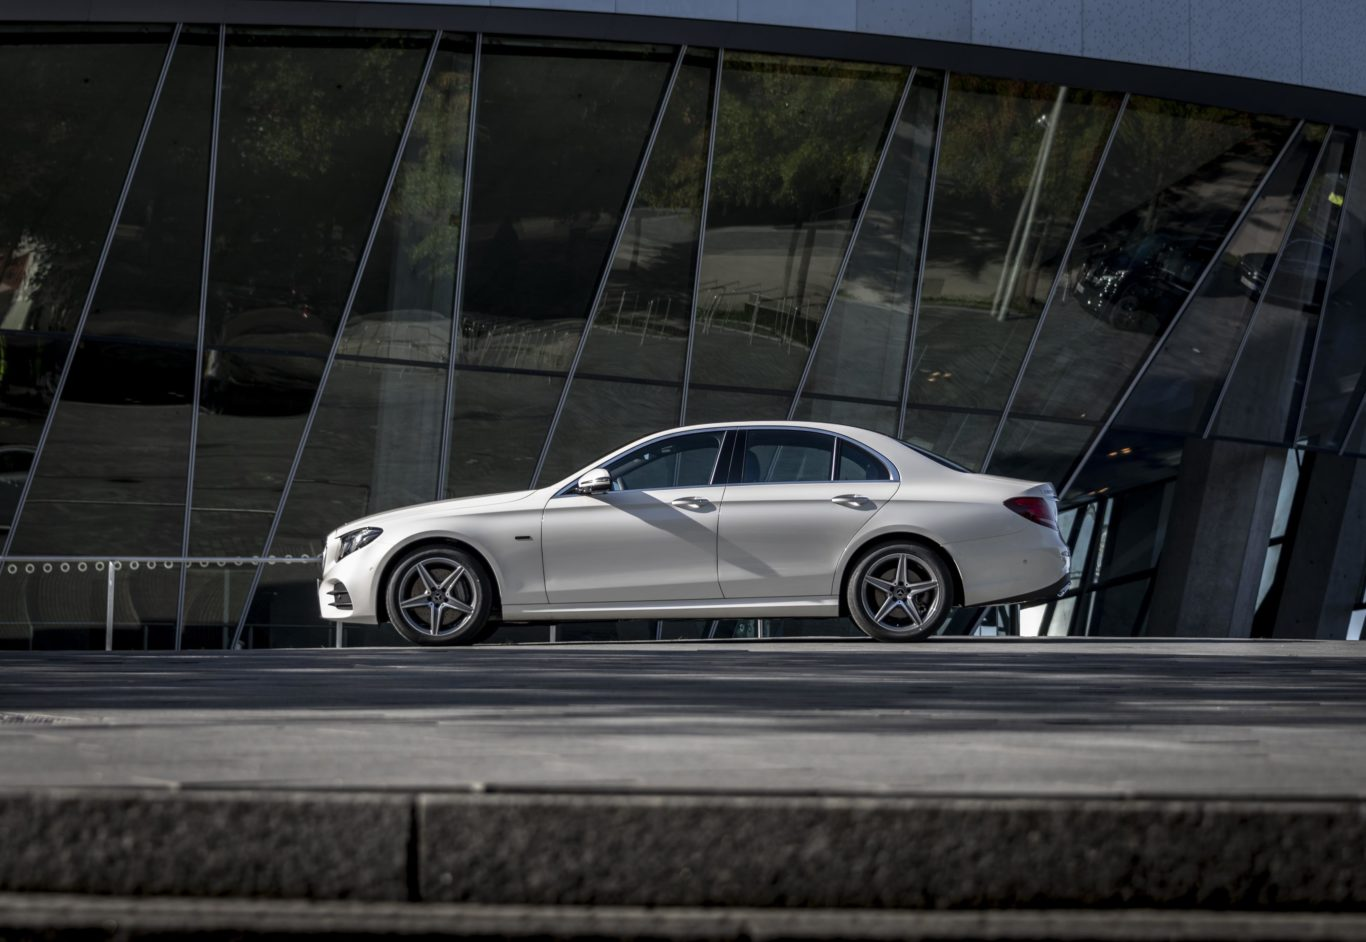 hight resolution of badged e 300 de the frugal new hybrid is available as either a saloon or